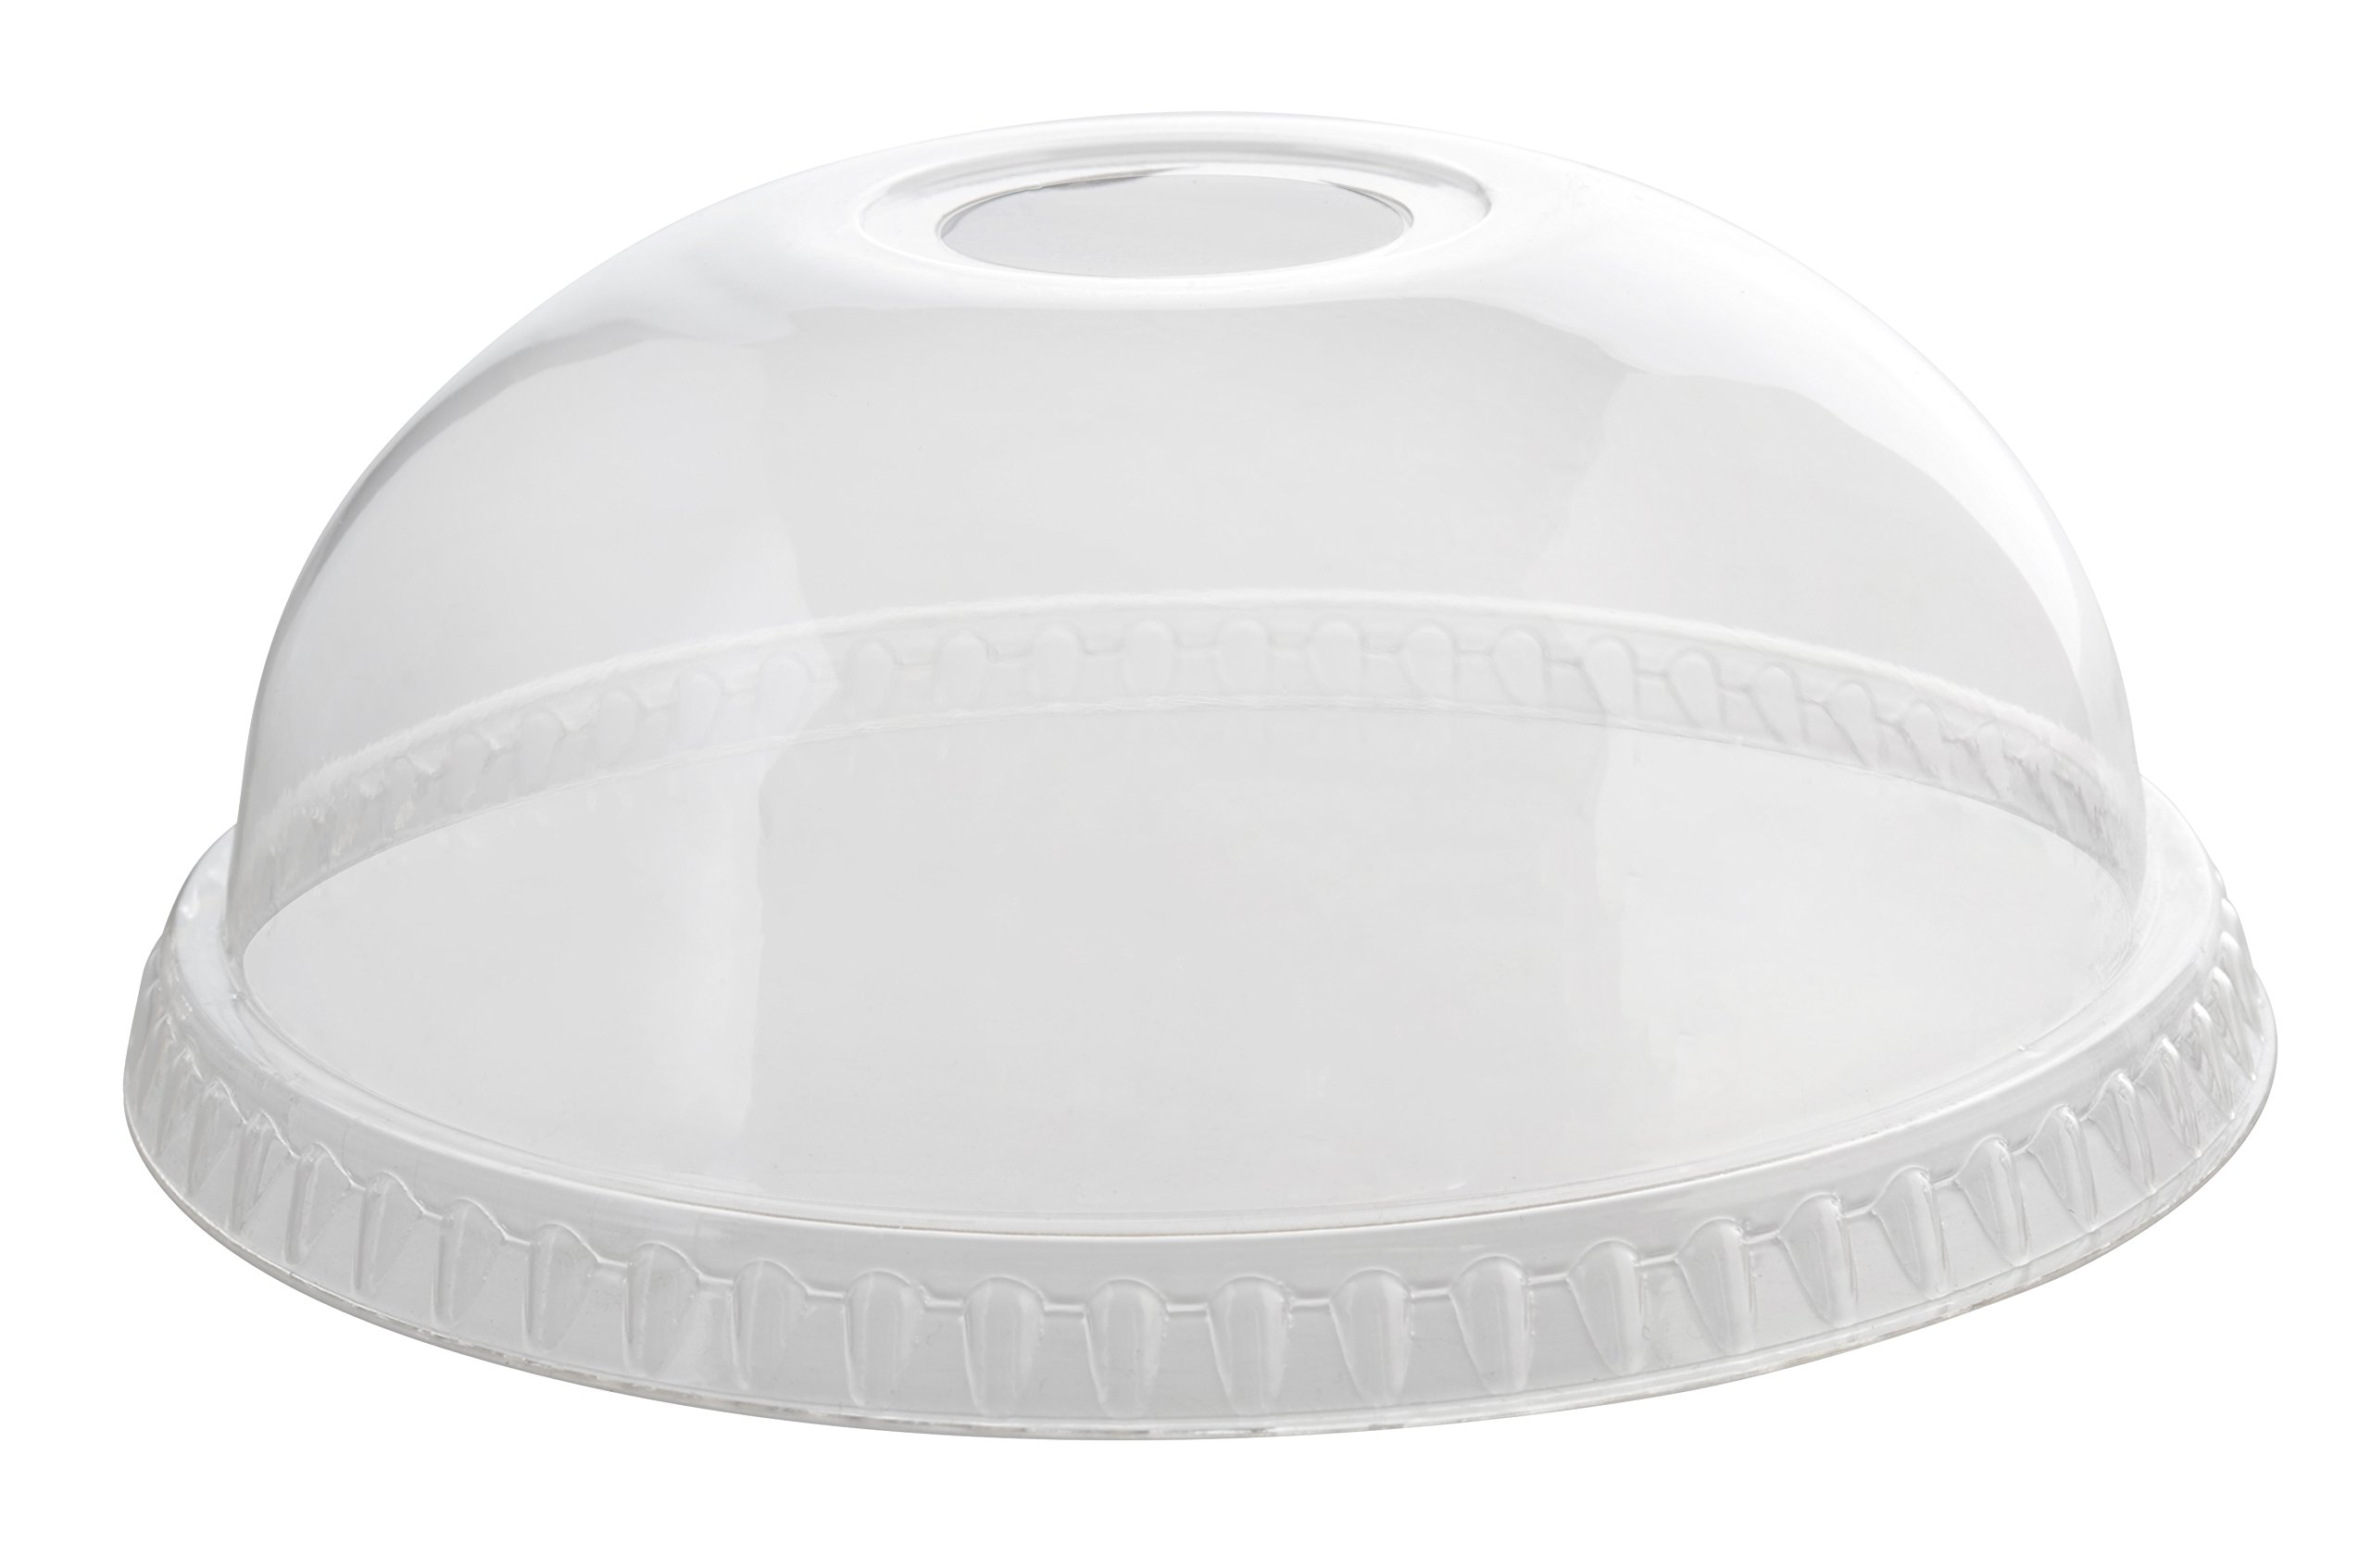 Fineline 31115DLH Dome Lid, W/Hole, 115 mm - 1000/Cs (100 x 10), Clear by Fine-line